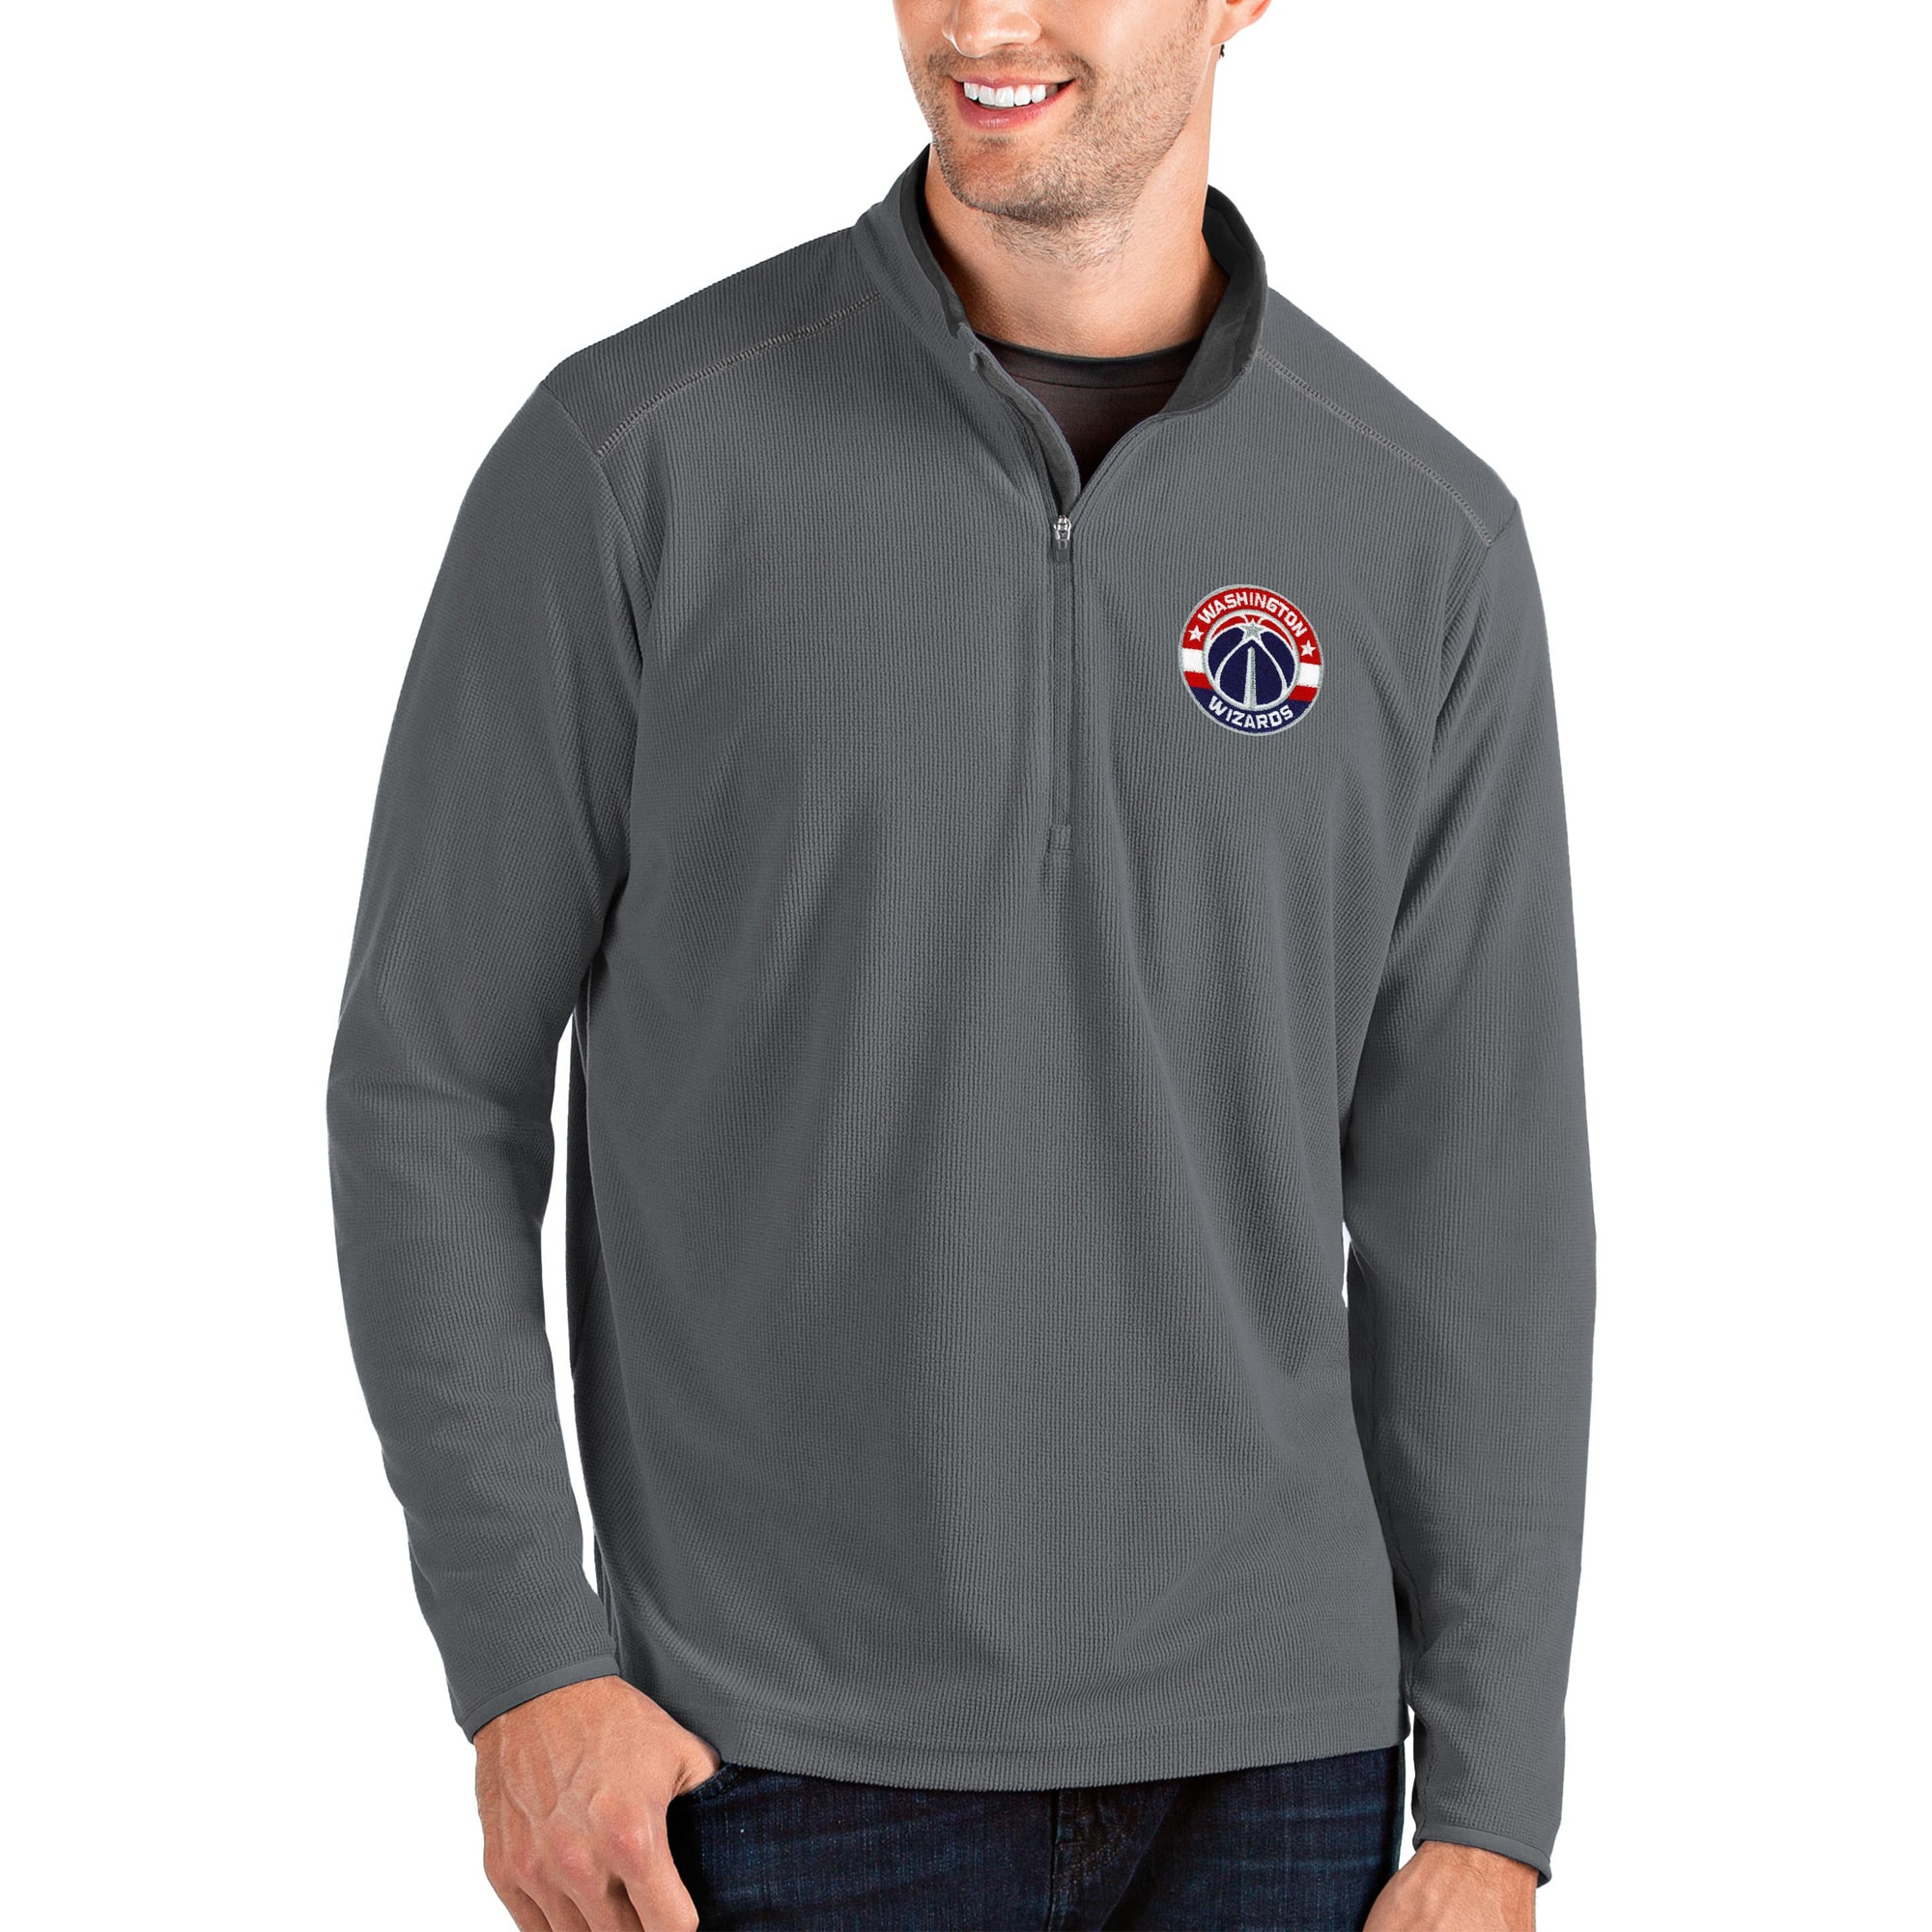 Washington Wizards Antigua Glacier Quarter-Zip Pullover Jacket - Charcoal/Gray